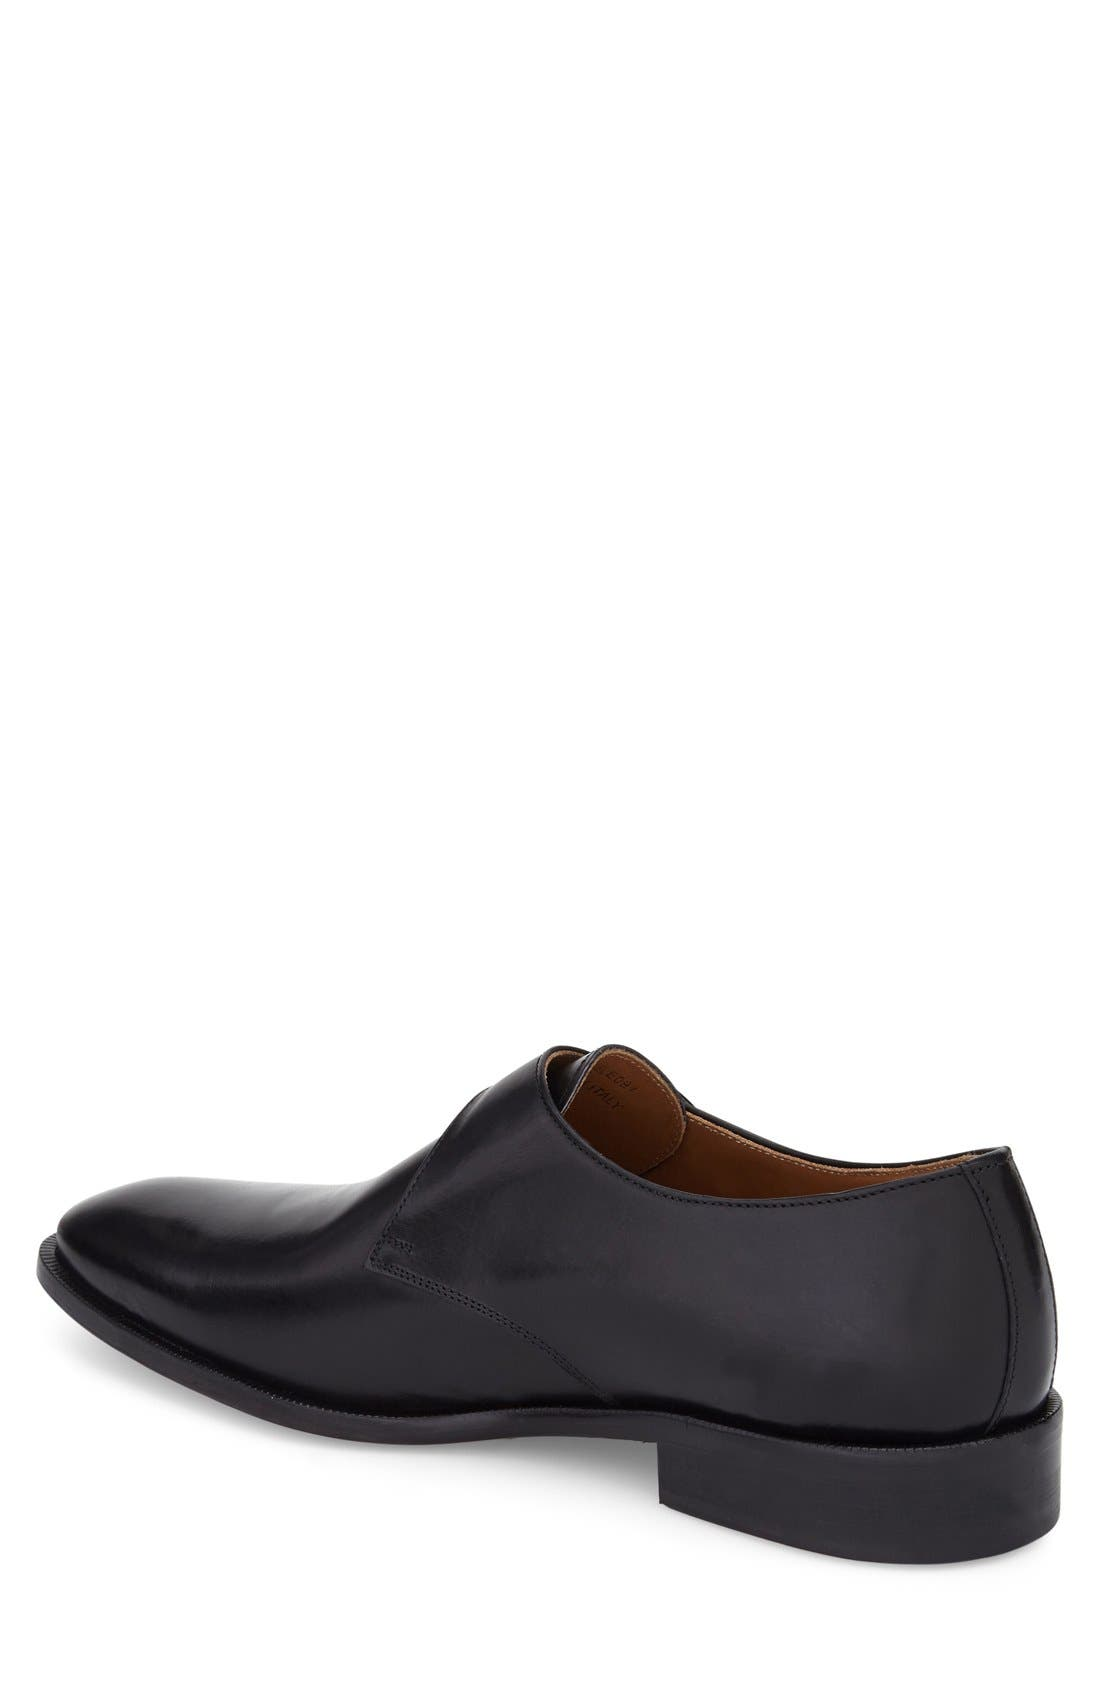 Suit Coat Monk Strap Shoe,                             Alternate thumbnail 2, color,                             001